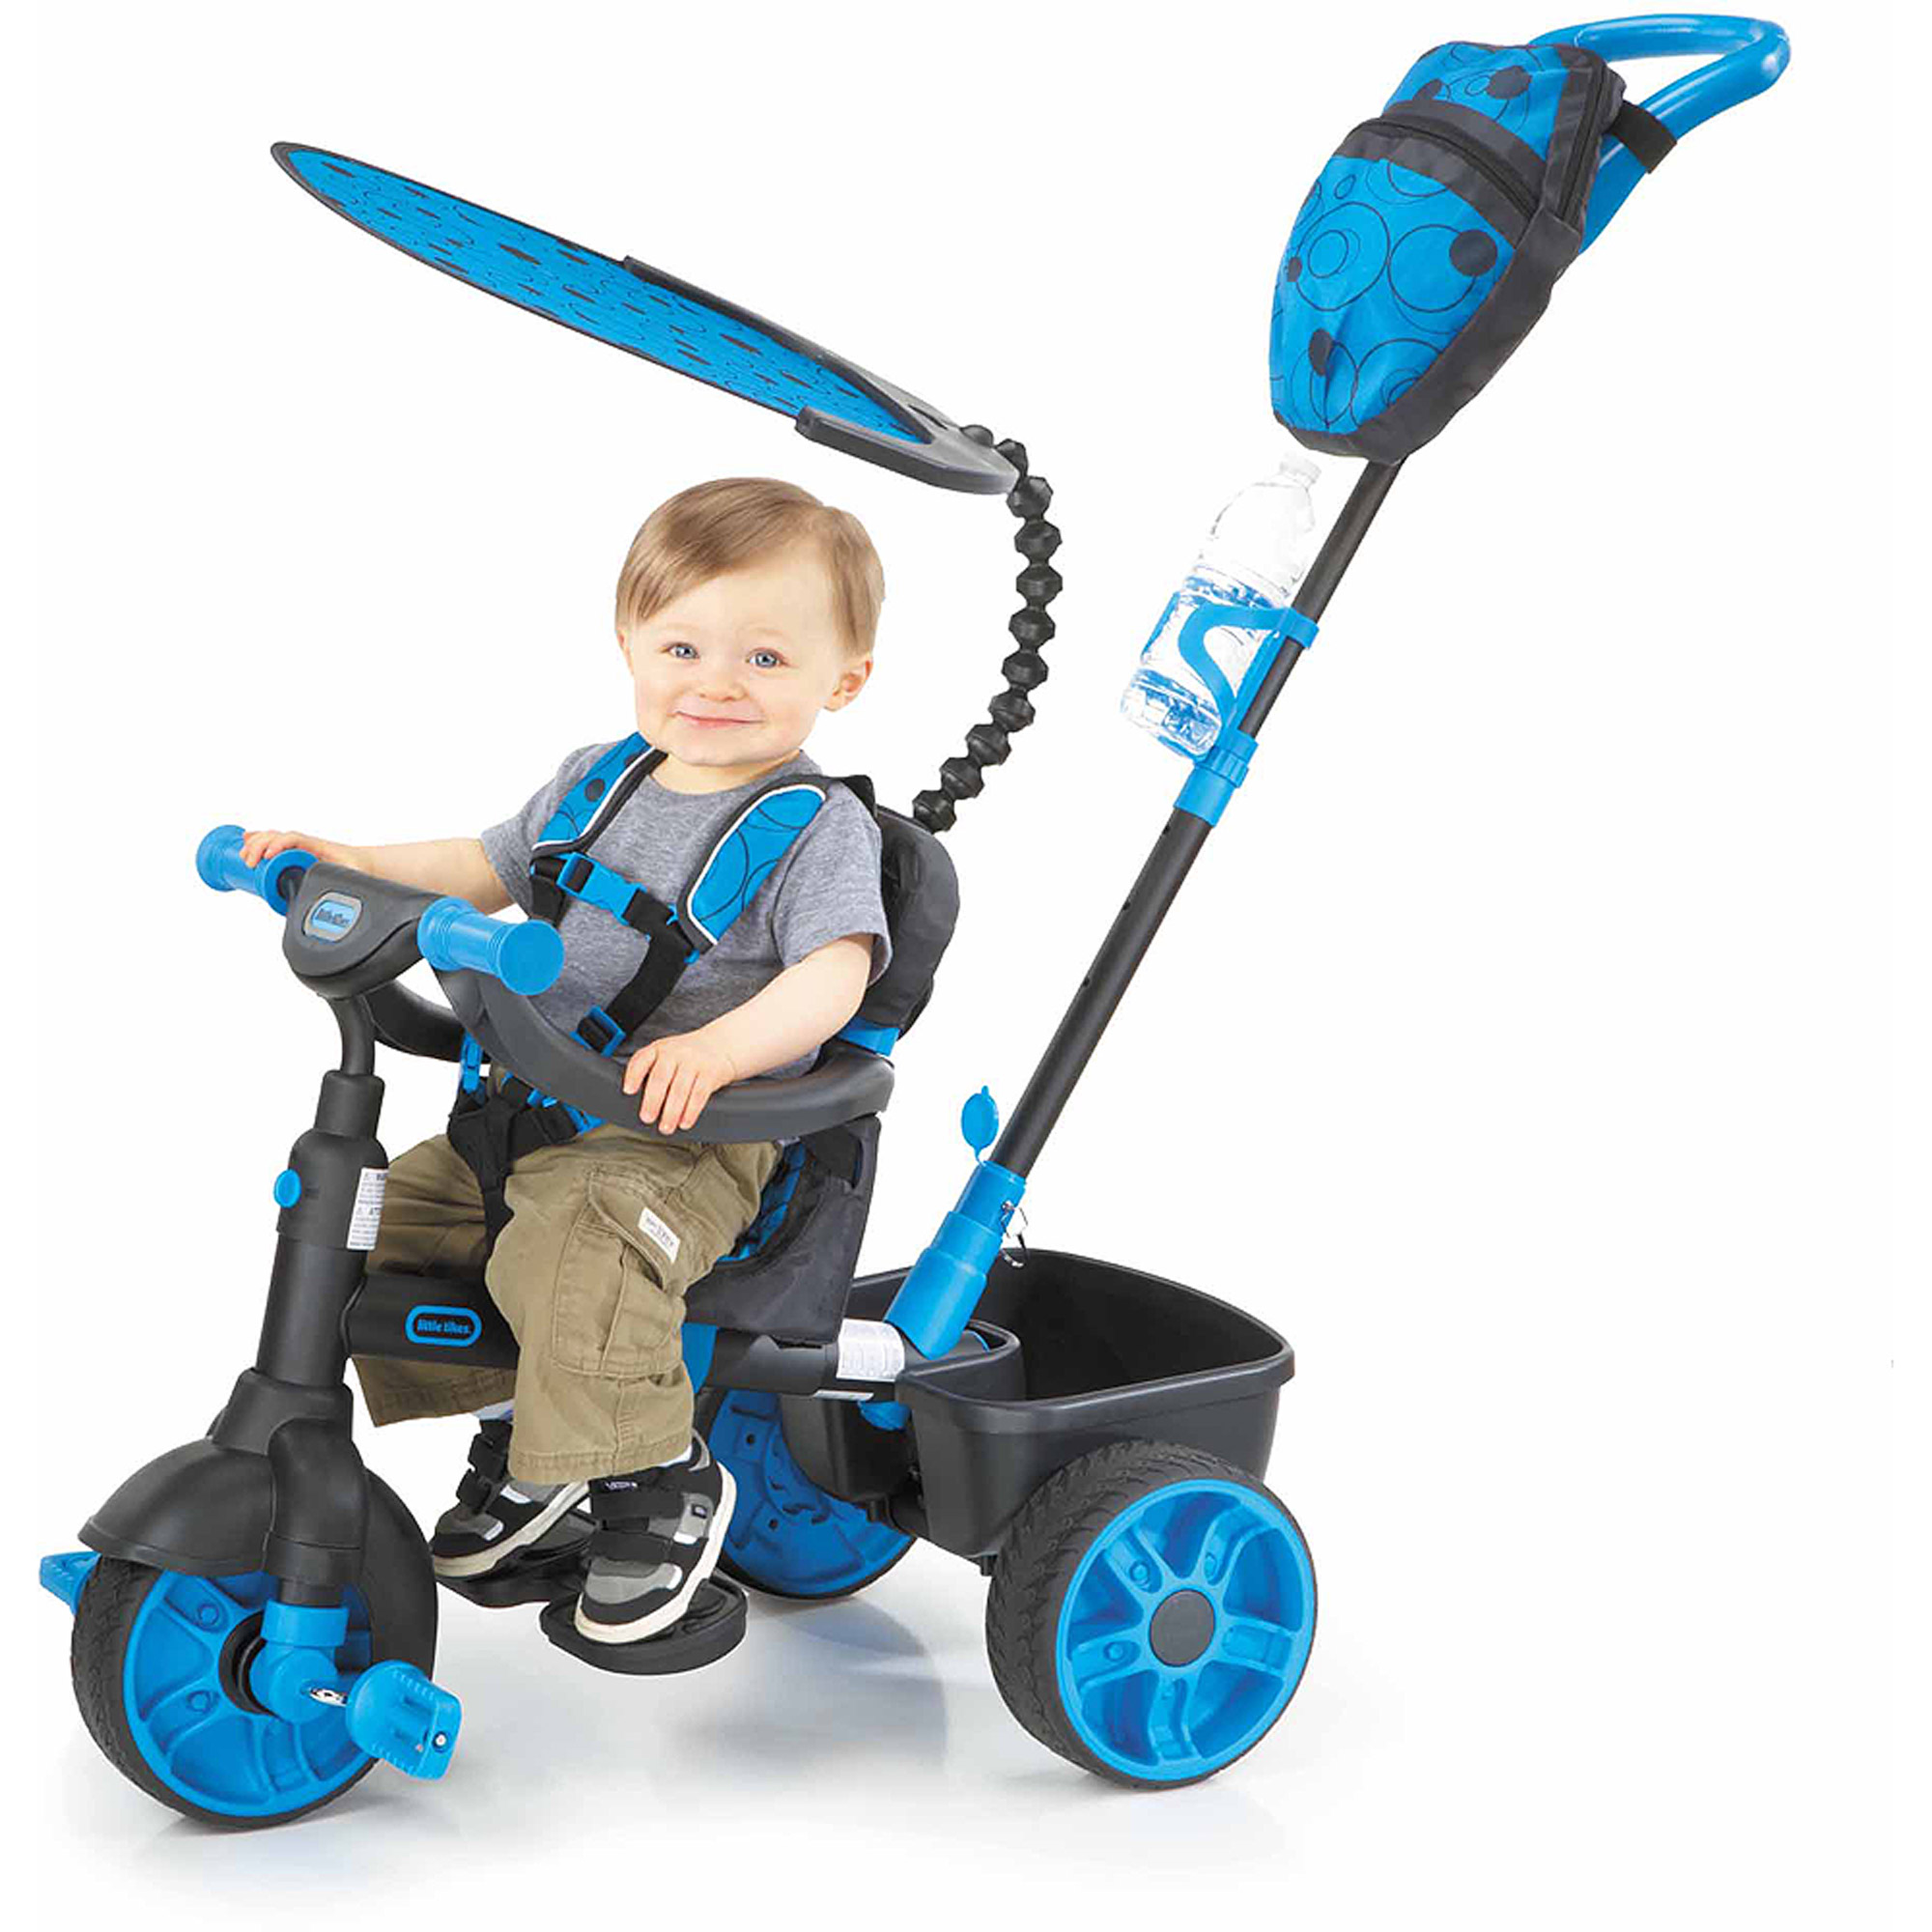 Little Tikes 4-in-1 Deluxe Edition Trike, Neon Blue